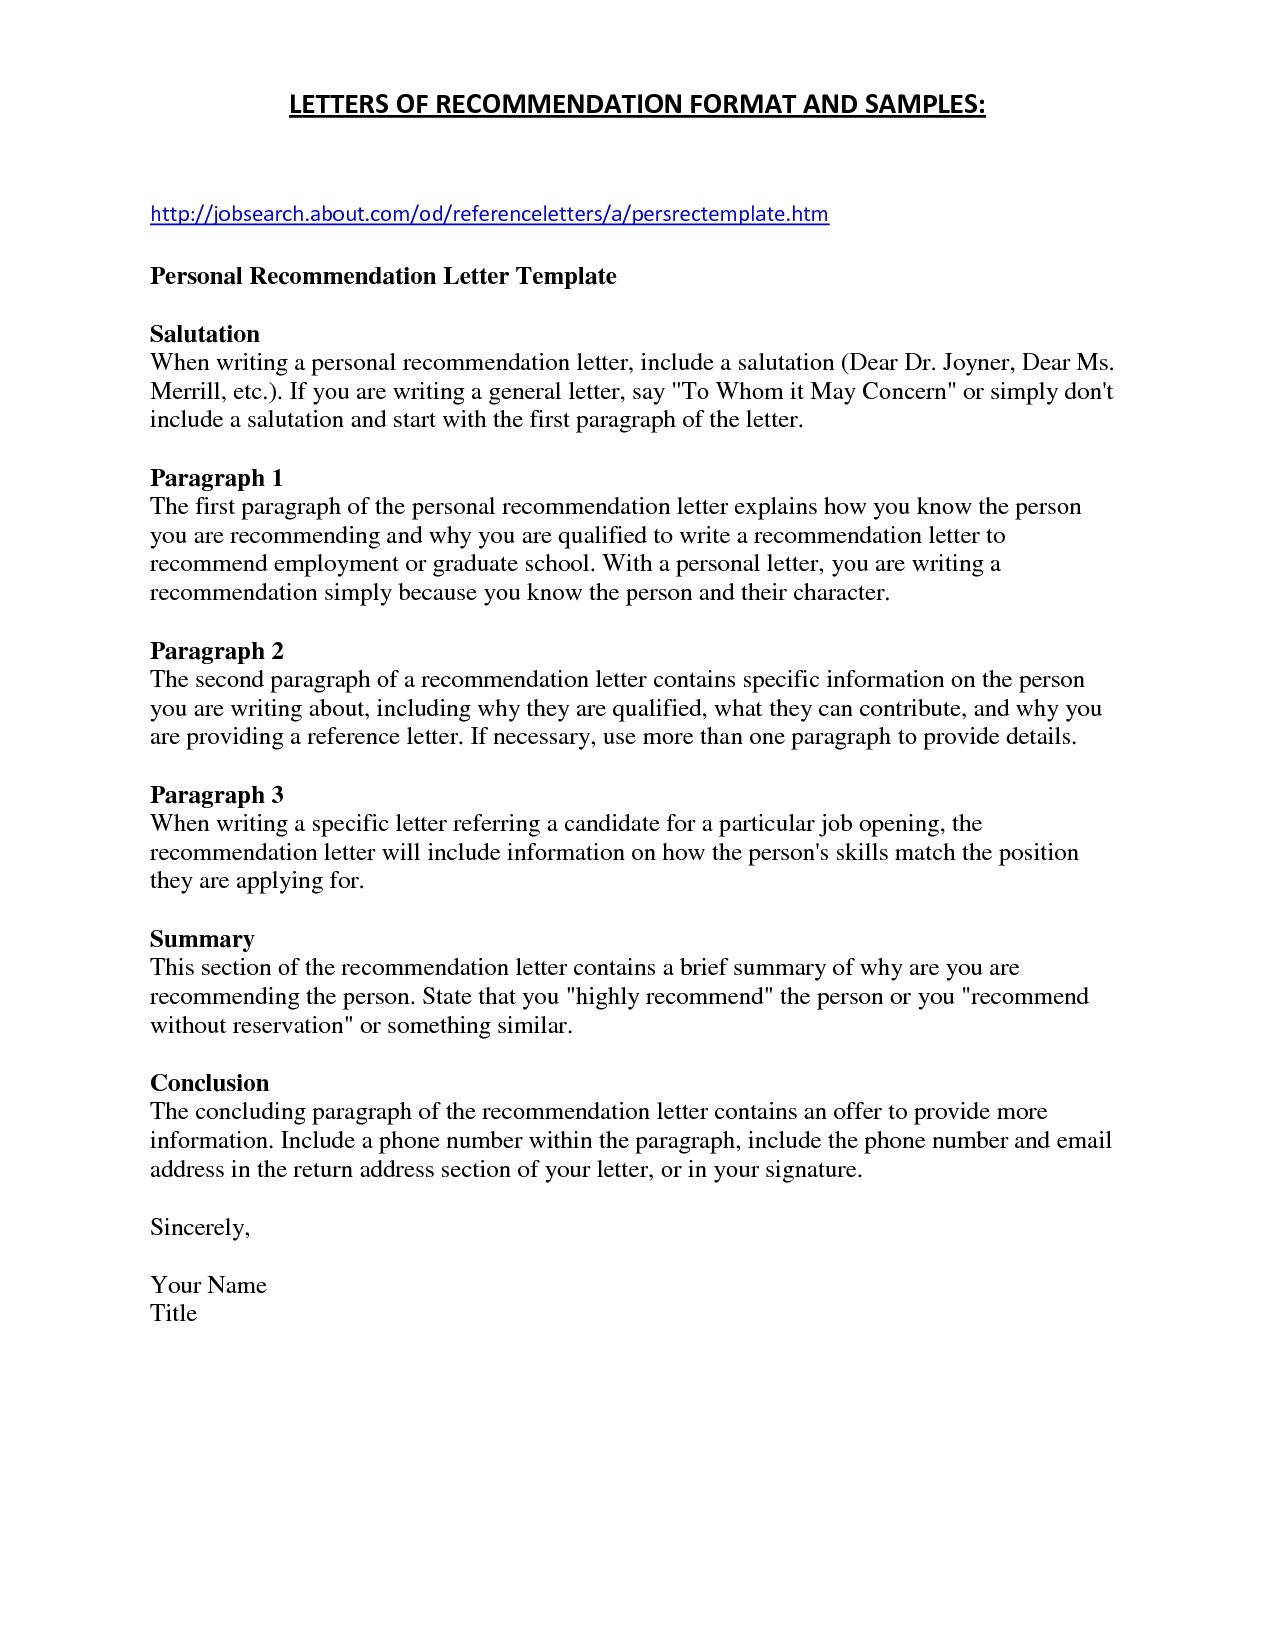 Phd Recommendation Letter Template - Sample Job Re Mendation Letter for Employee New Letter Re